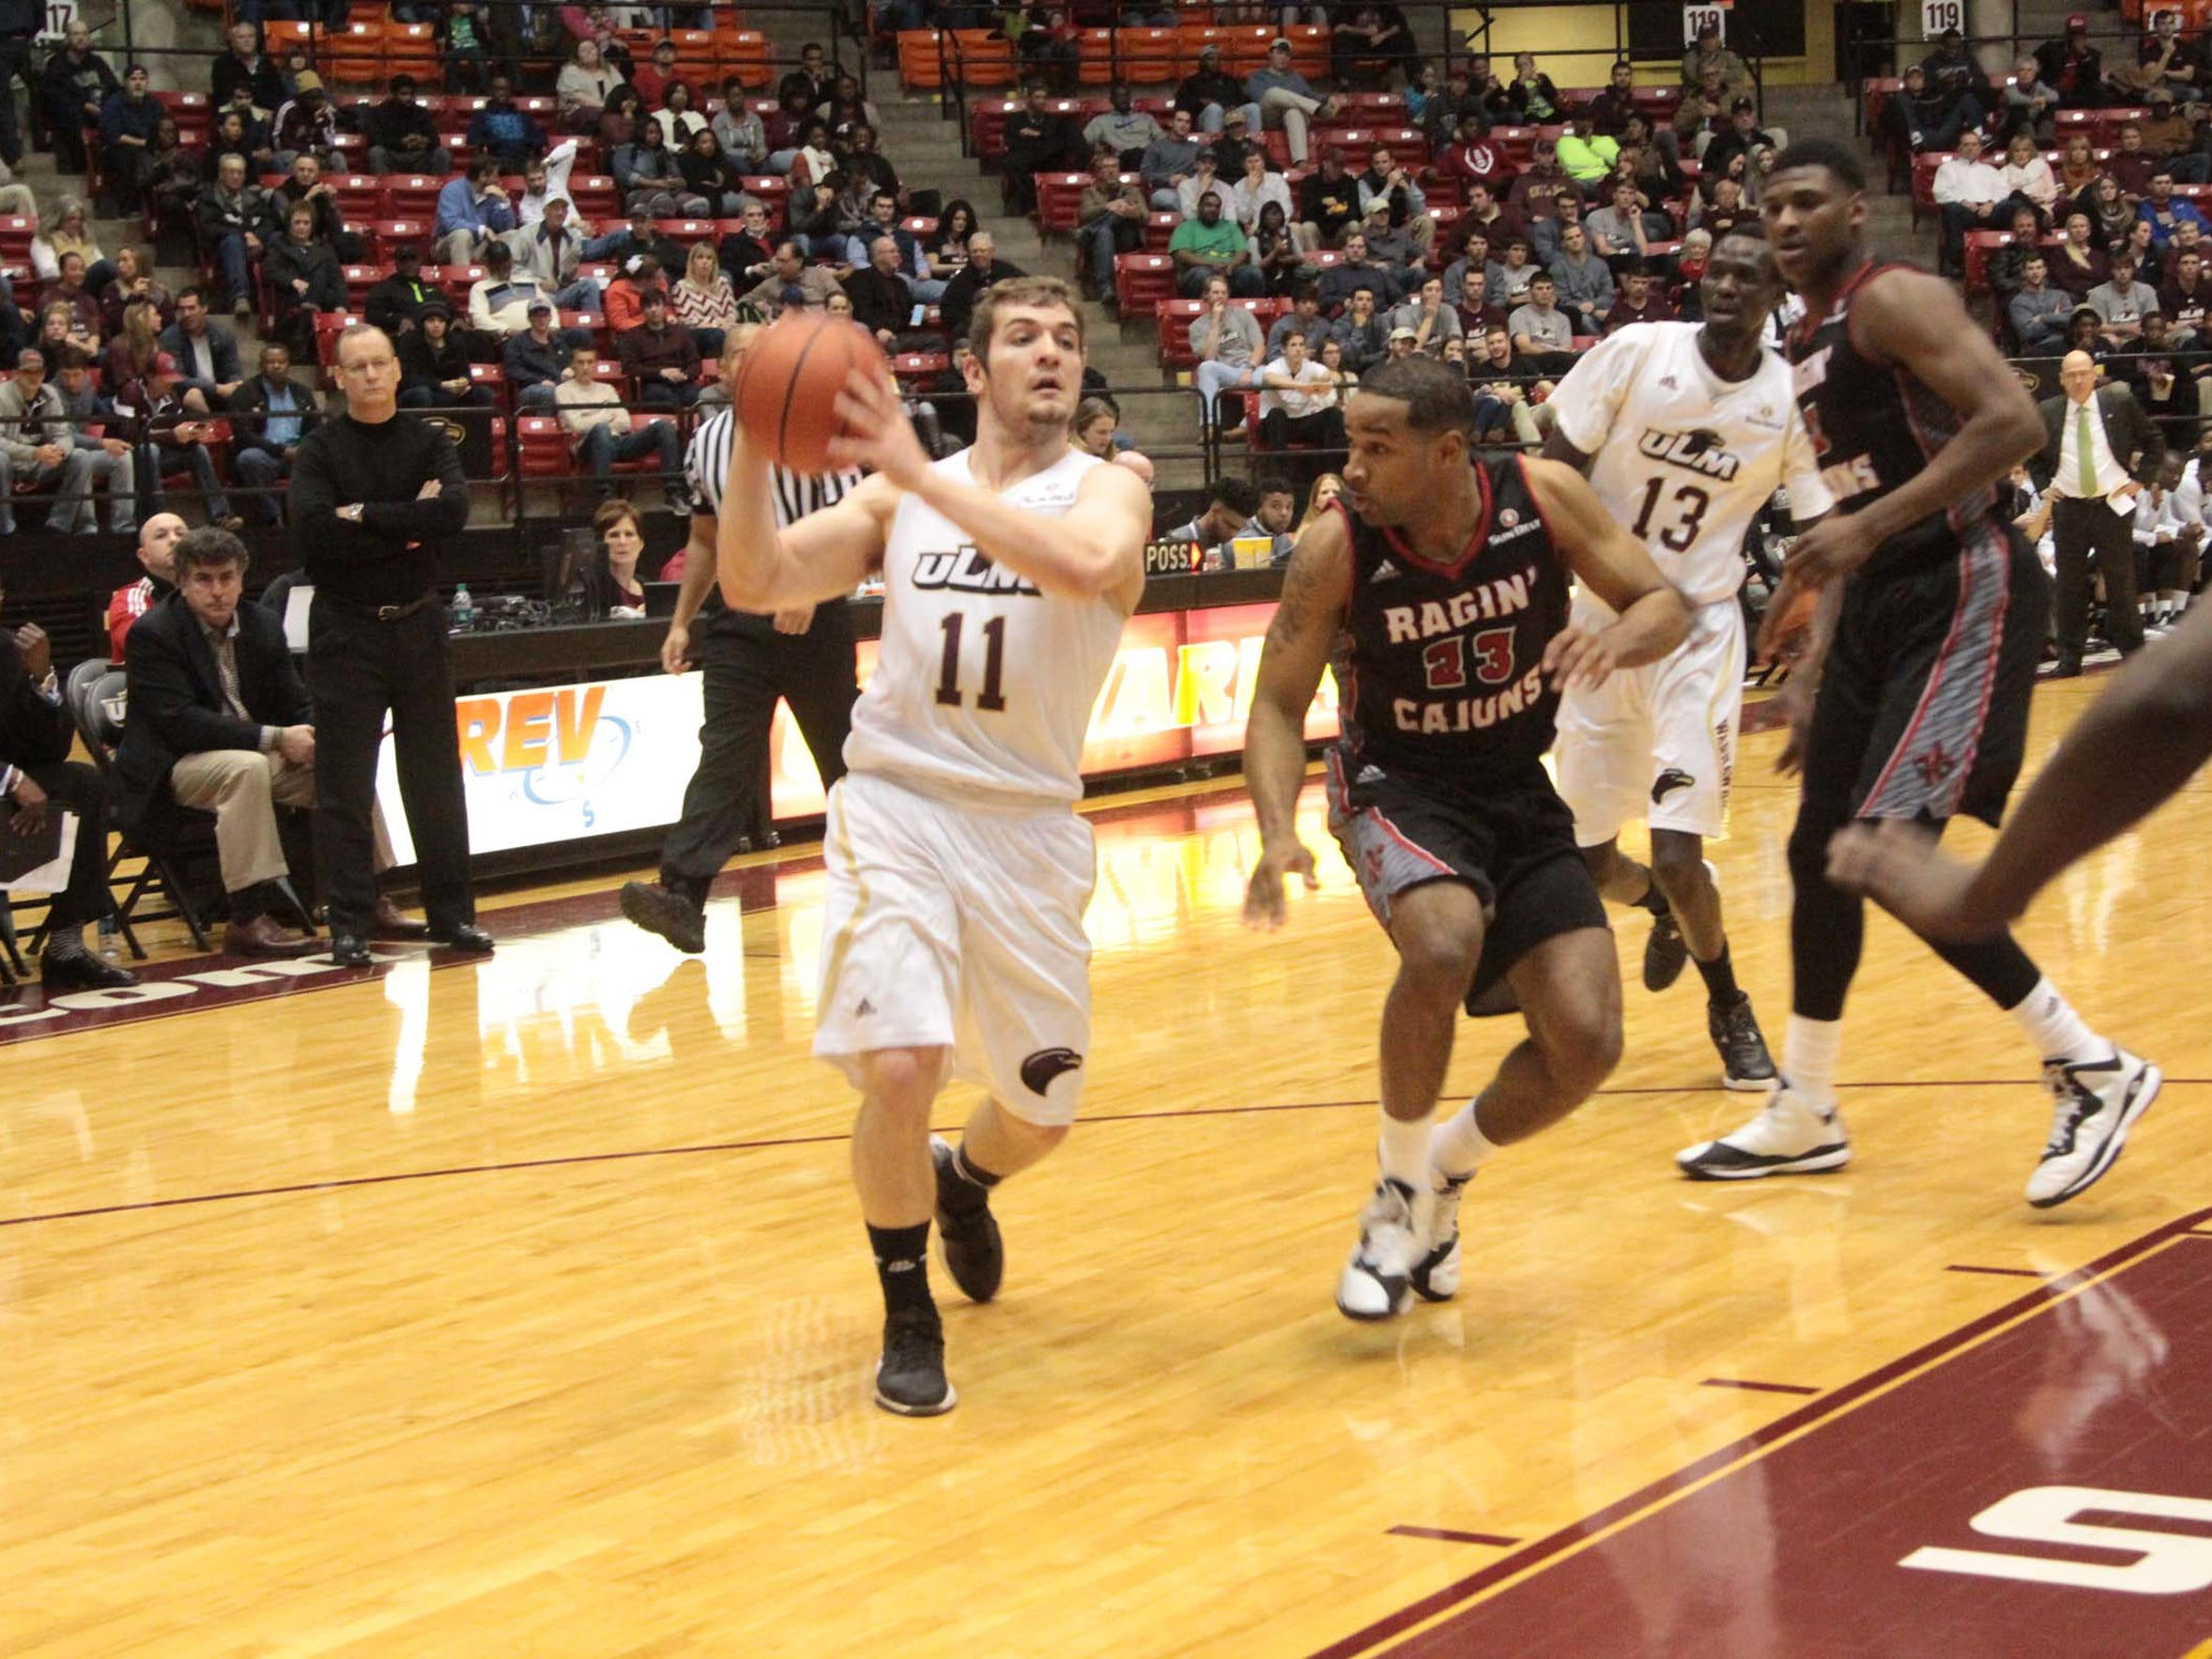 Nick Coppola played 1,308 minutes for ULM during the